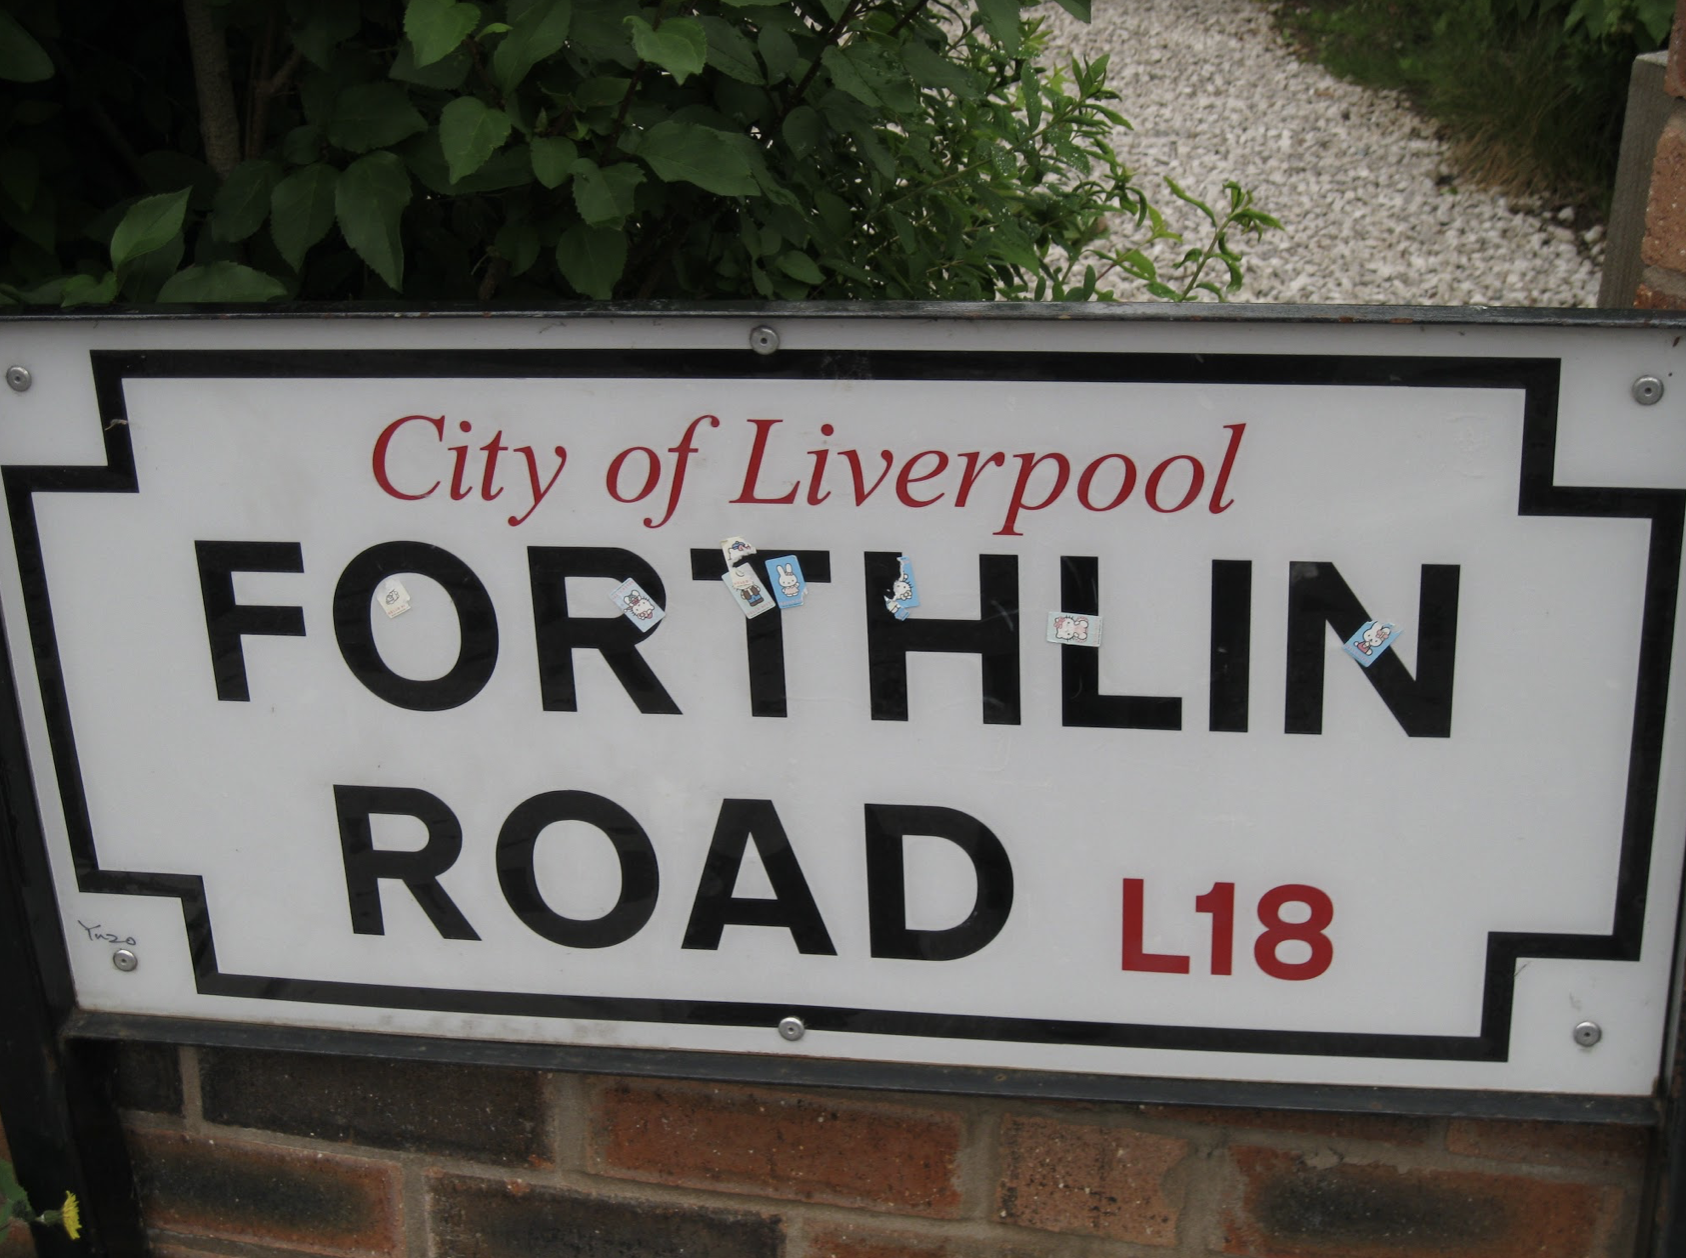 Forthlin Road Liverpool